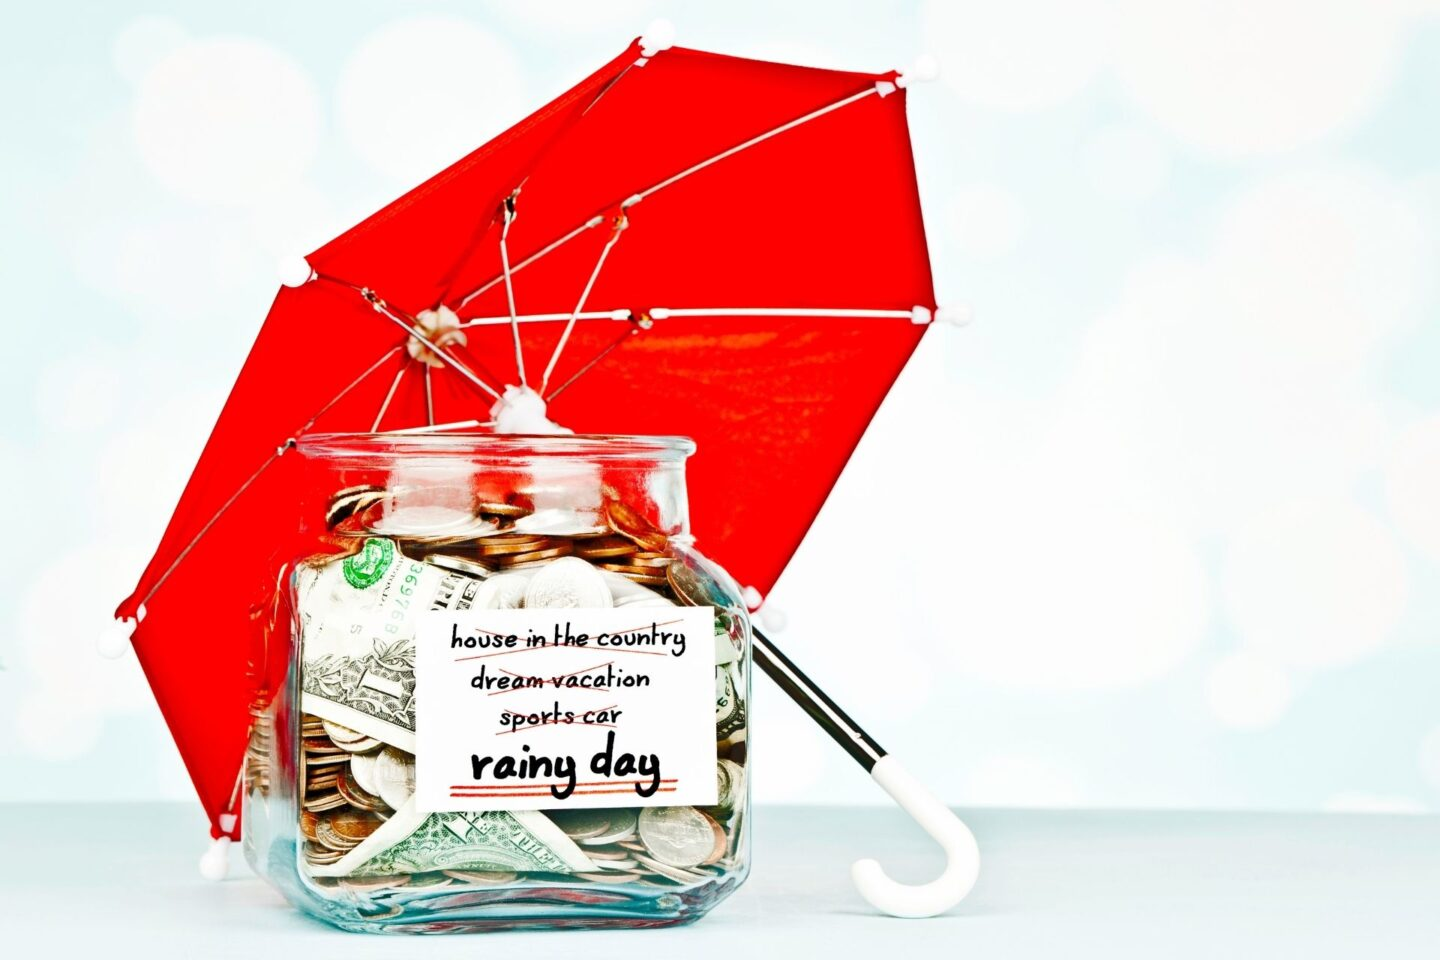 Savings for a rainy day - 10 Things I Would Do If I Won the Lottery